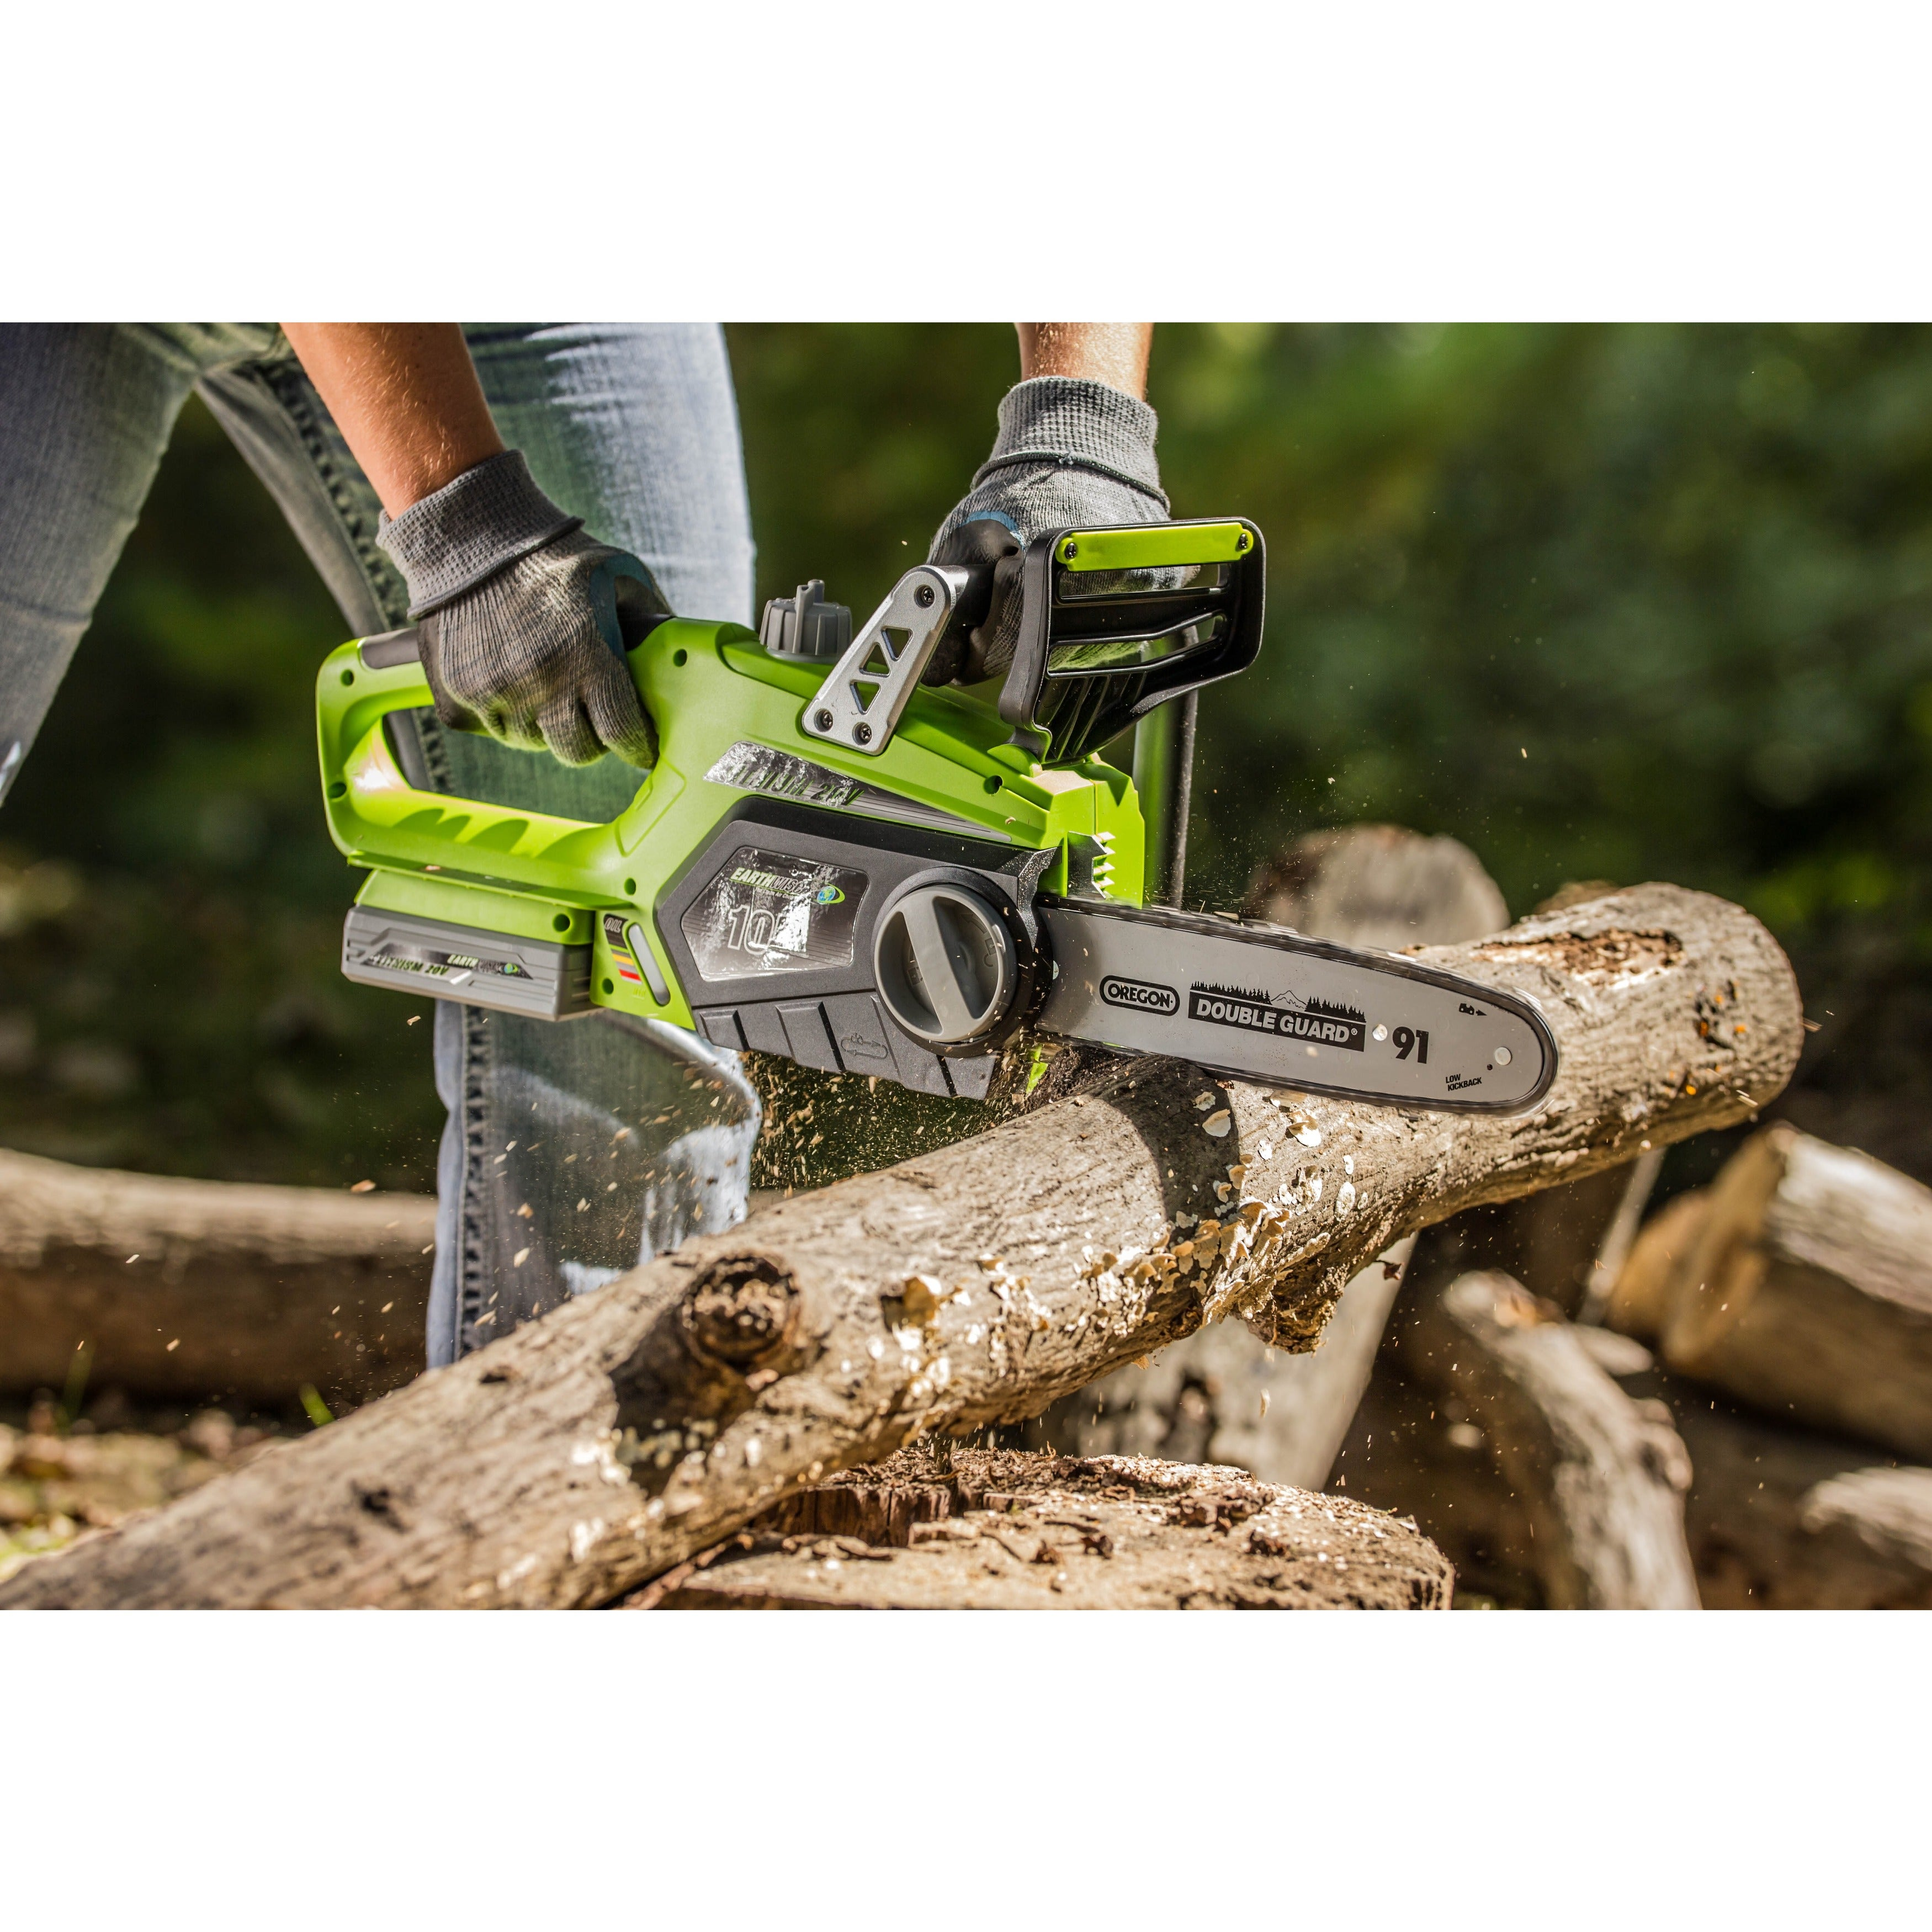 Earthwise 10 inch cordless 20 volt lithium ion chain saw free earthwise 10 inch cordless 20 volt lithium ion chain saw free shipping today overstock 16848944 greentooth Gallery